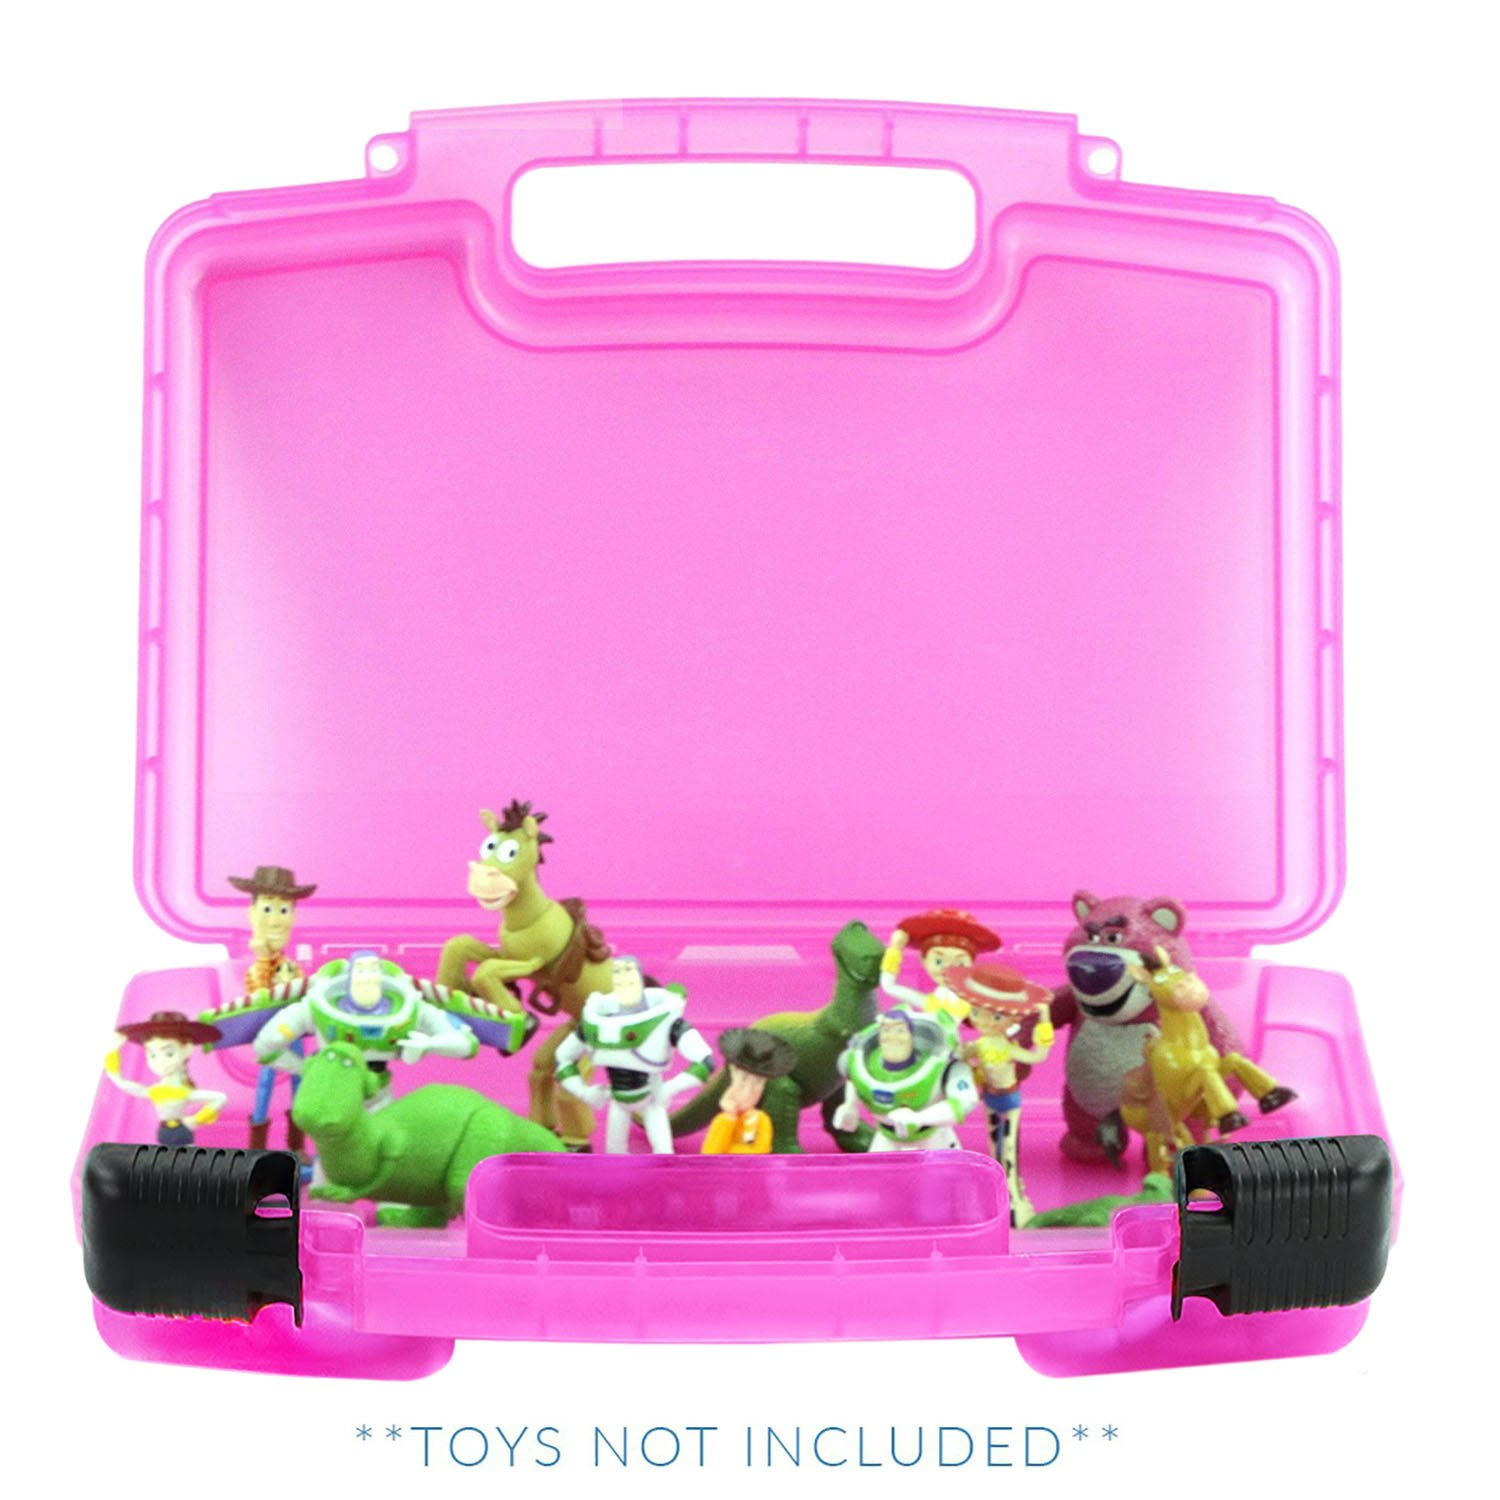 Accessories Kids LMB LMB136 Life Made Better Toy Story Case Toy Storage Carrying Box Figures Playset Organizer